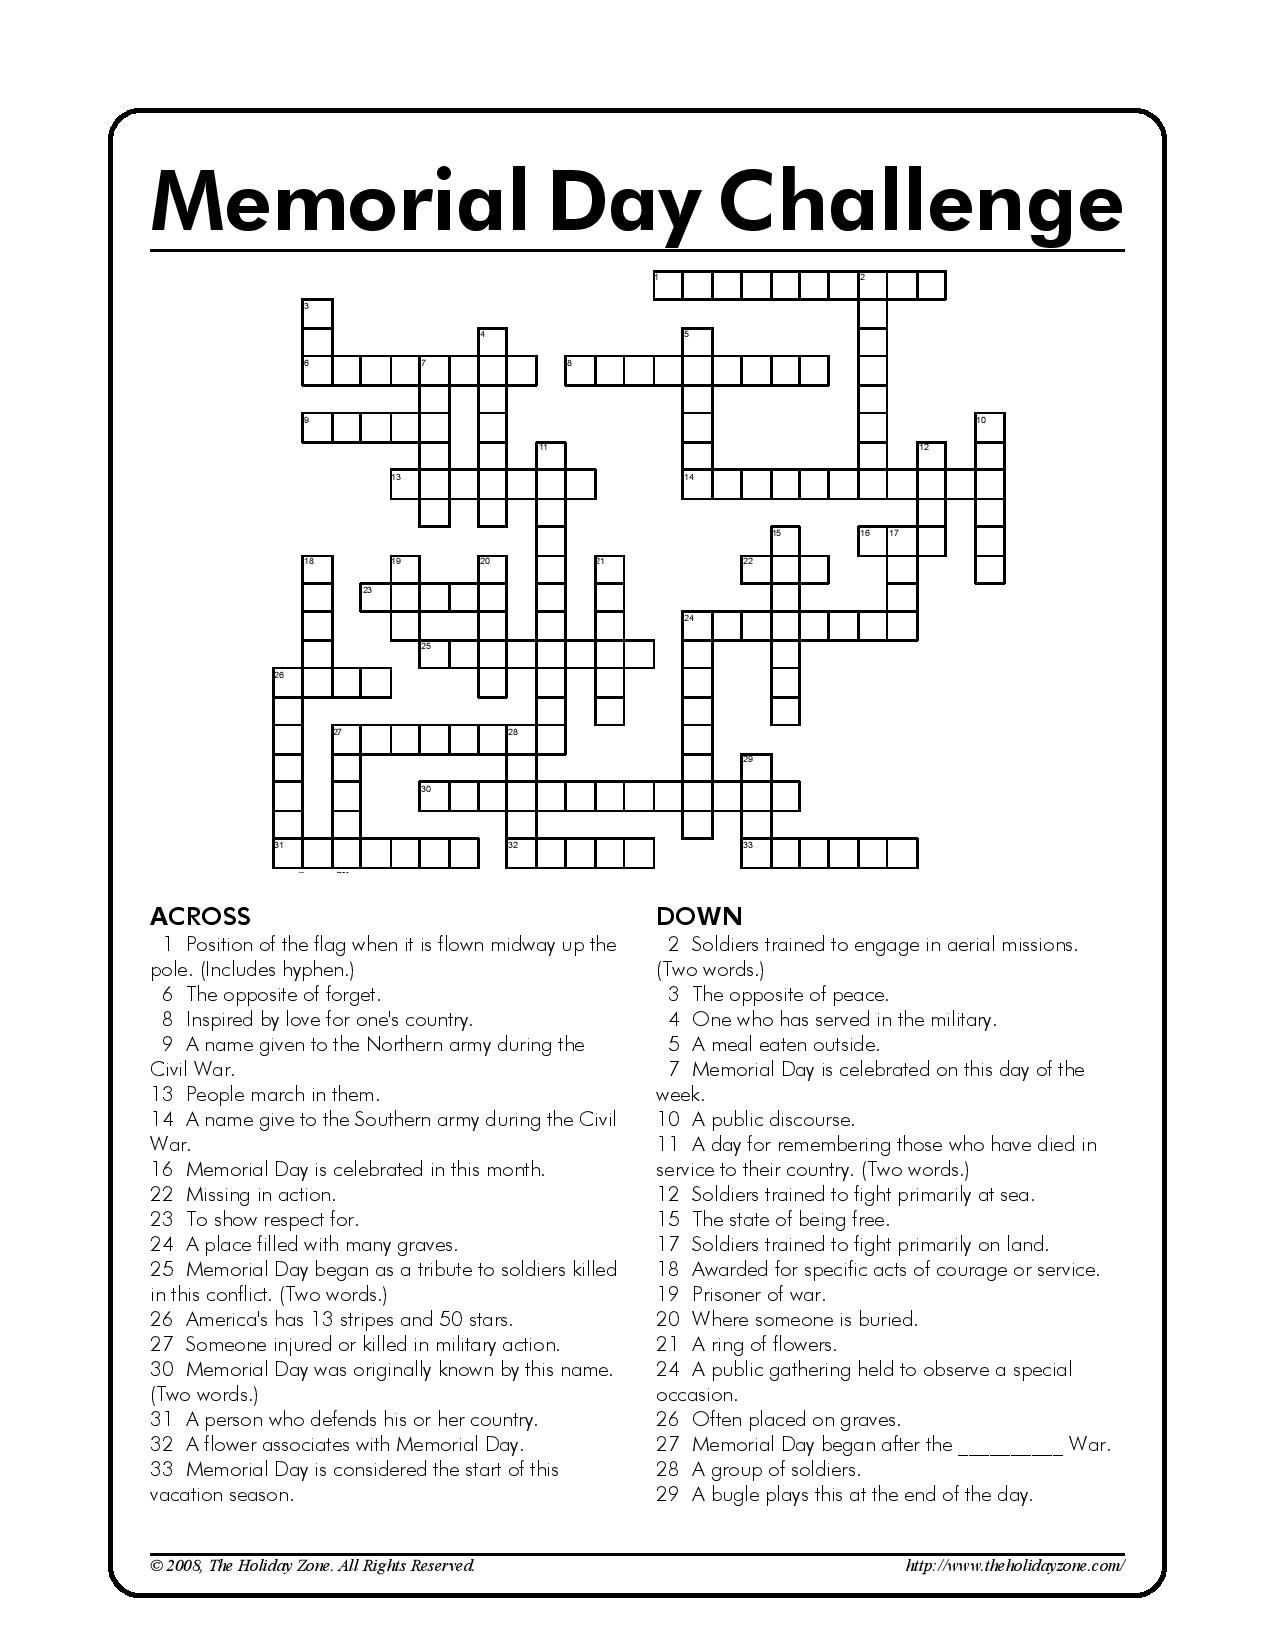 Memorial Day Kids Crossword Puzzle! [Courtesy of The Holiday Zone]